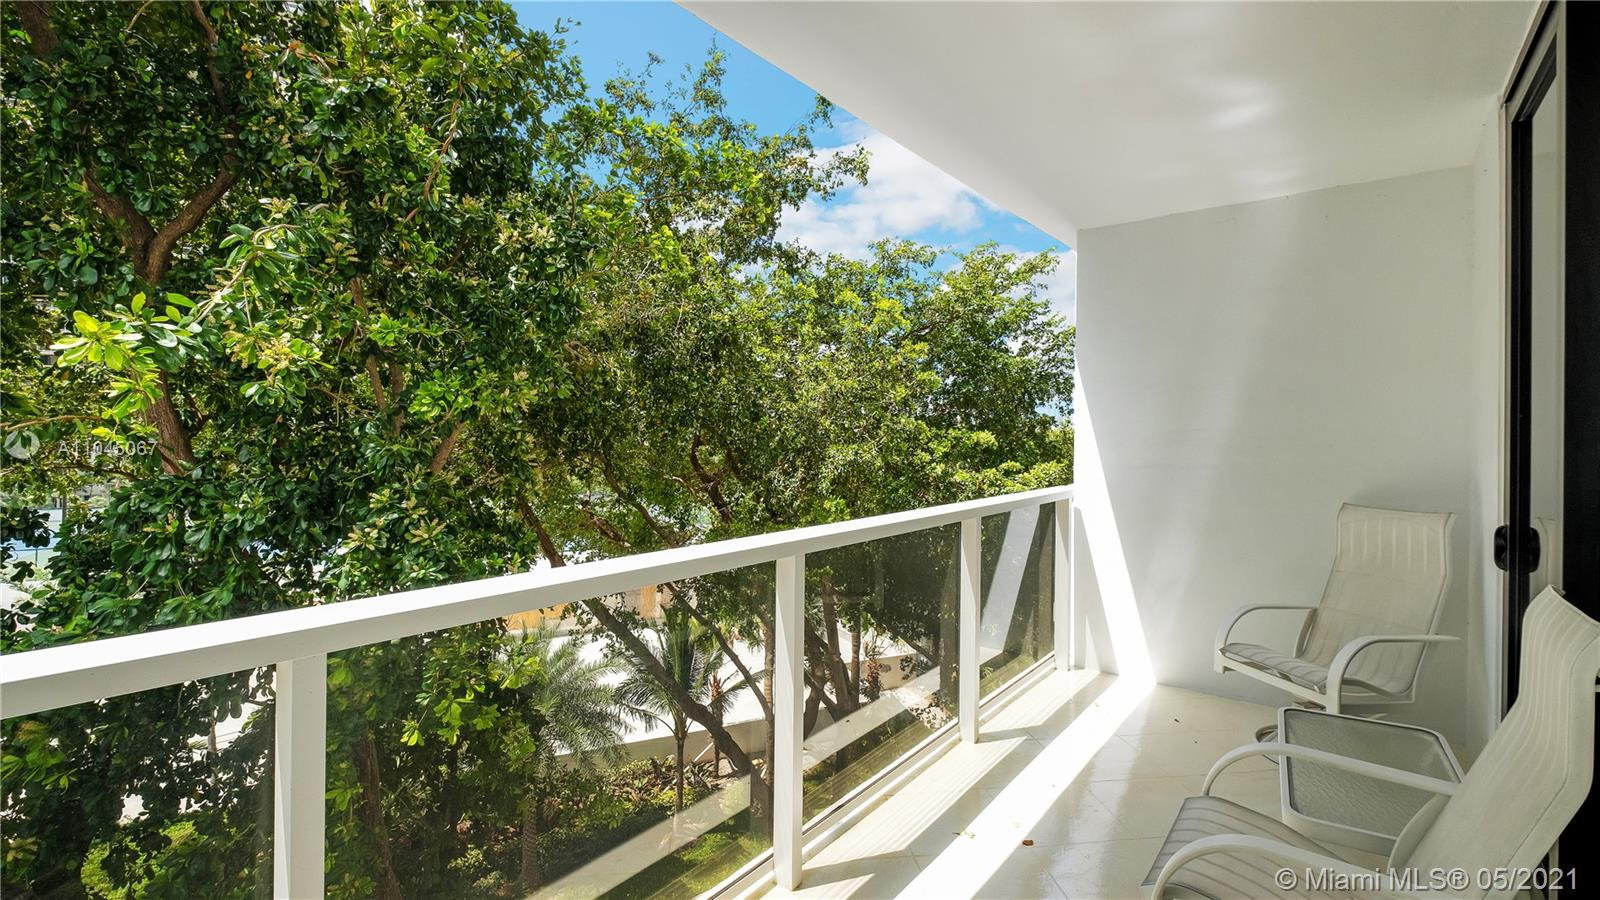 Photo of 20281 Country Club Dr #314, Aventura, Florida, 33180 - Breakfast Nook